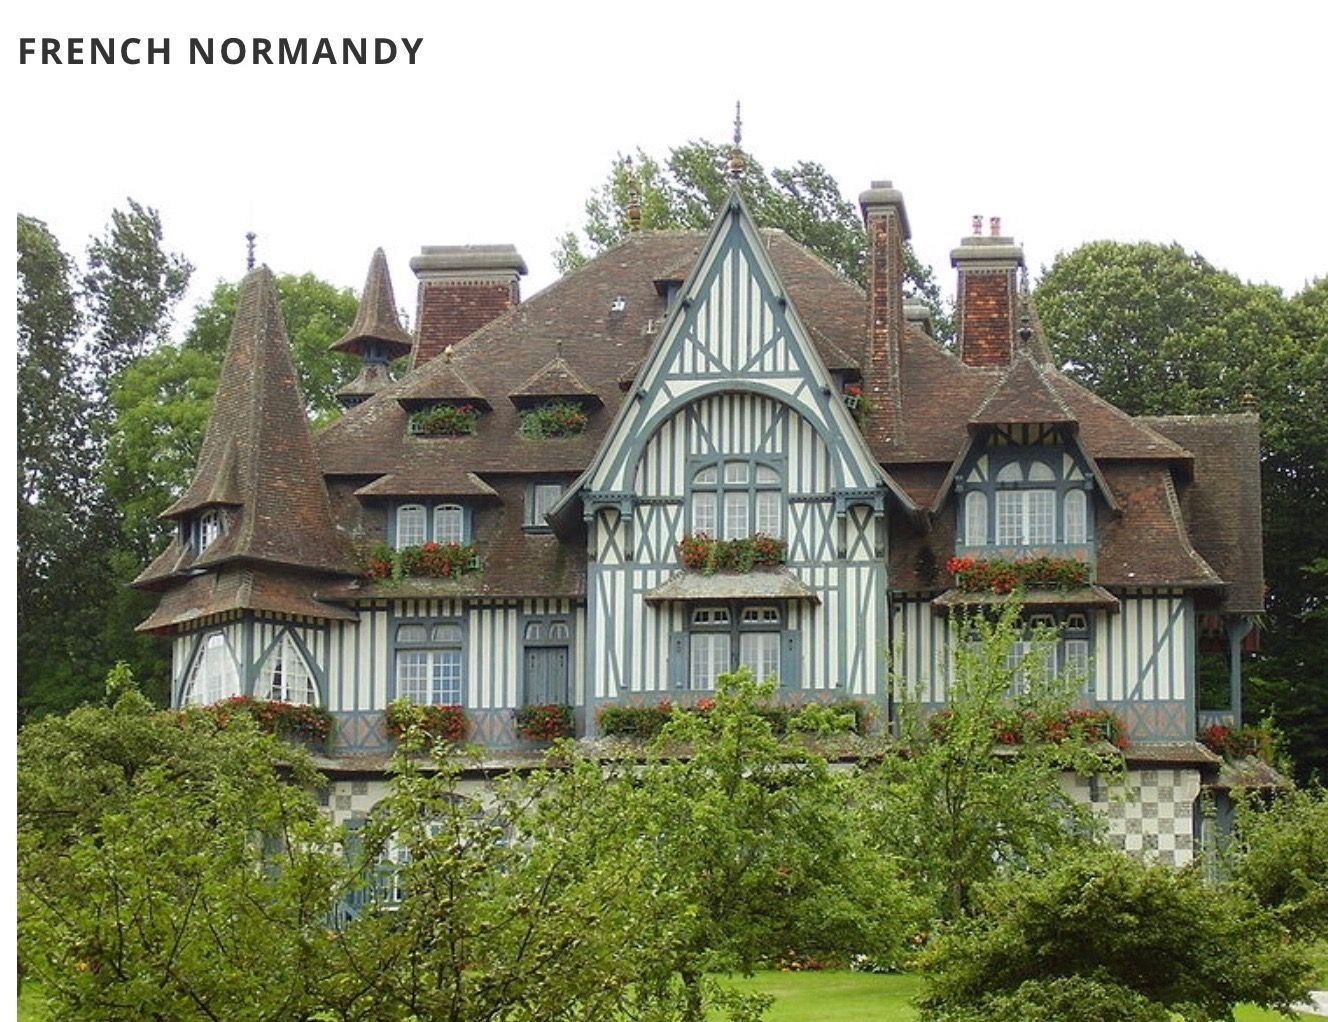 French Normandy Style House Styles Architecture Exterior Paint